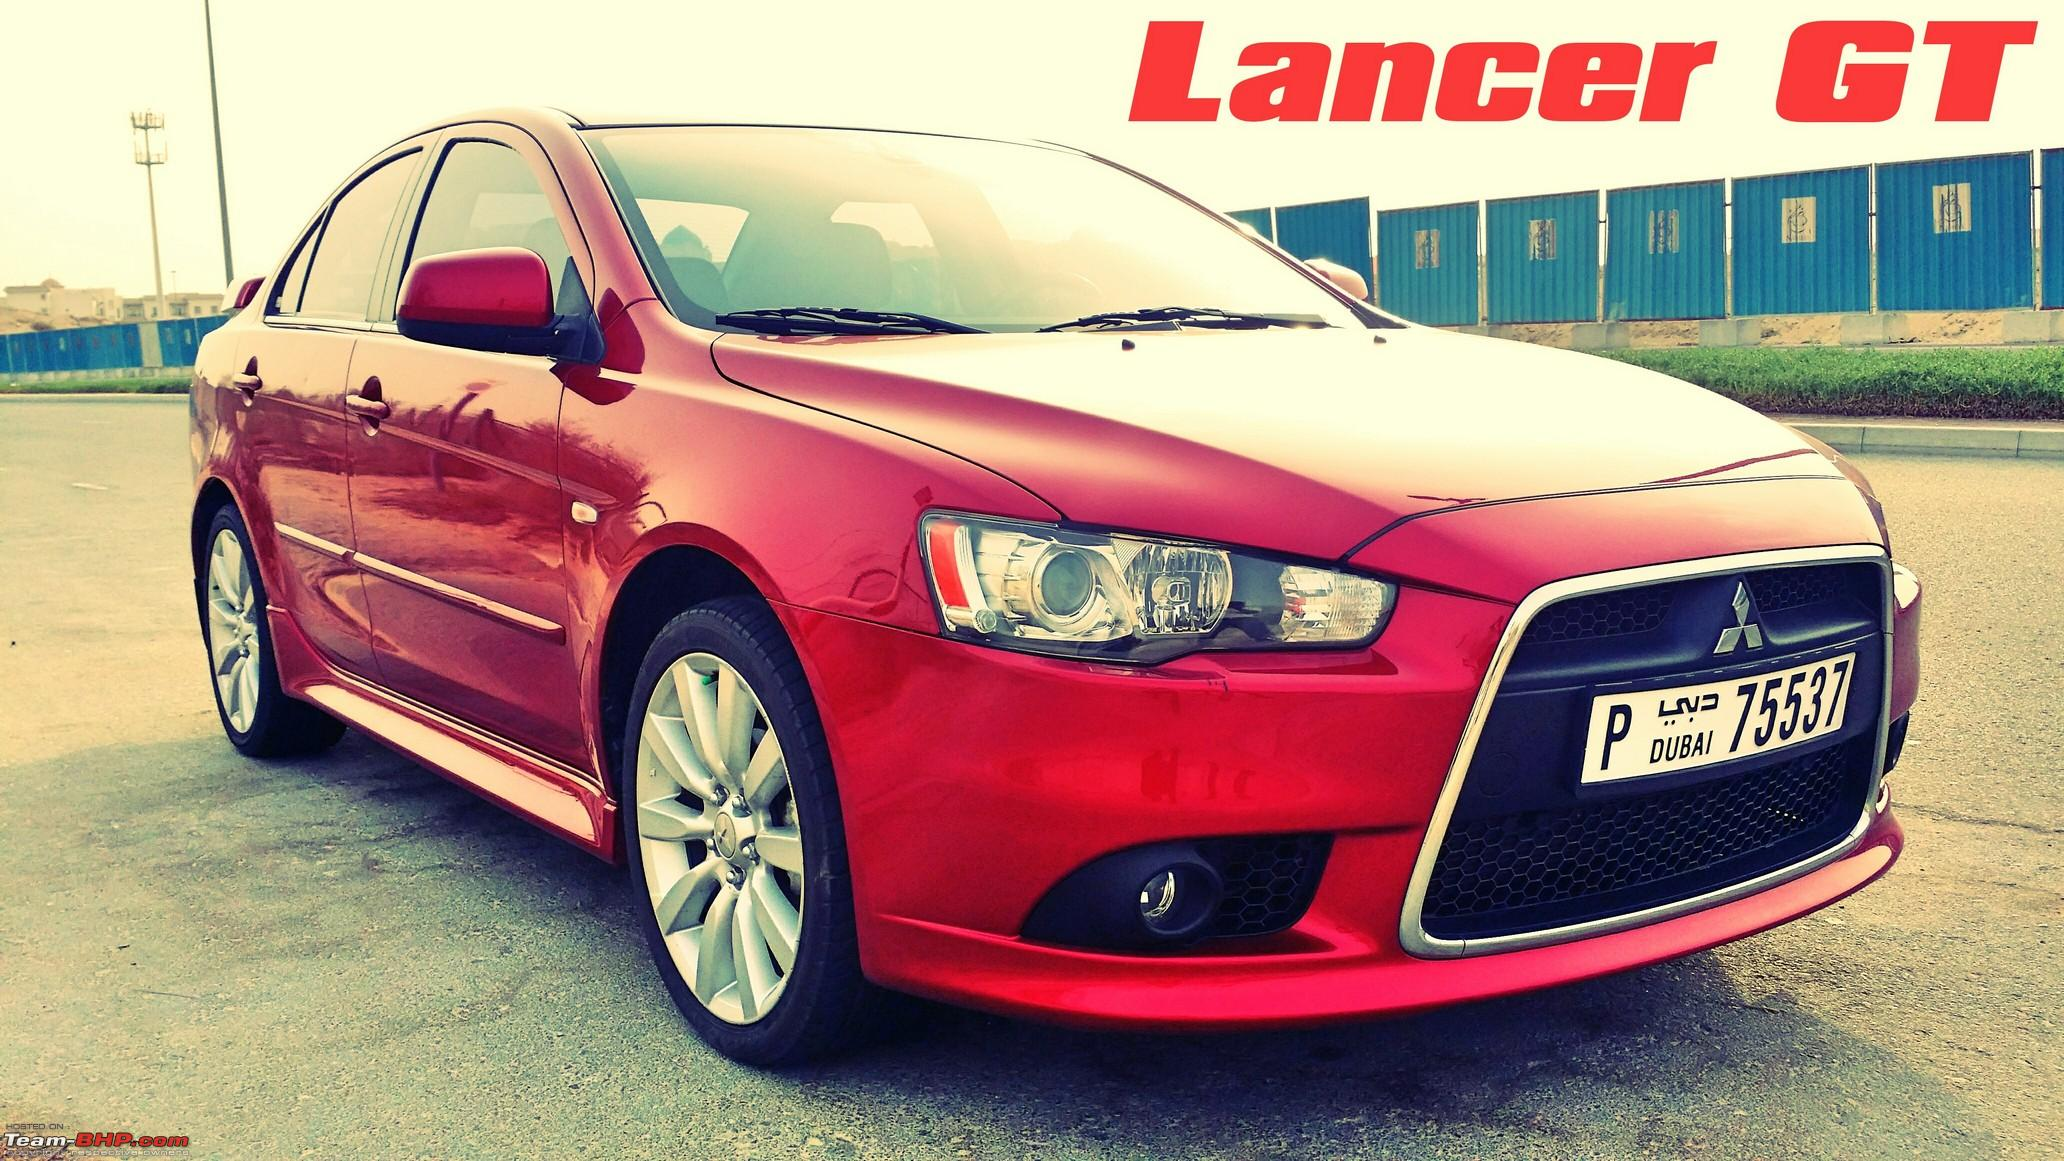 Pre Owned Mitsubishi Lancer 20 Gt Dubai Team Bhp 2008 Starter Location Fotor 140647108178092